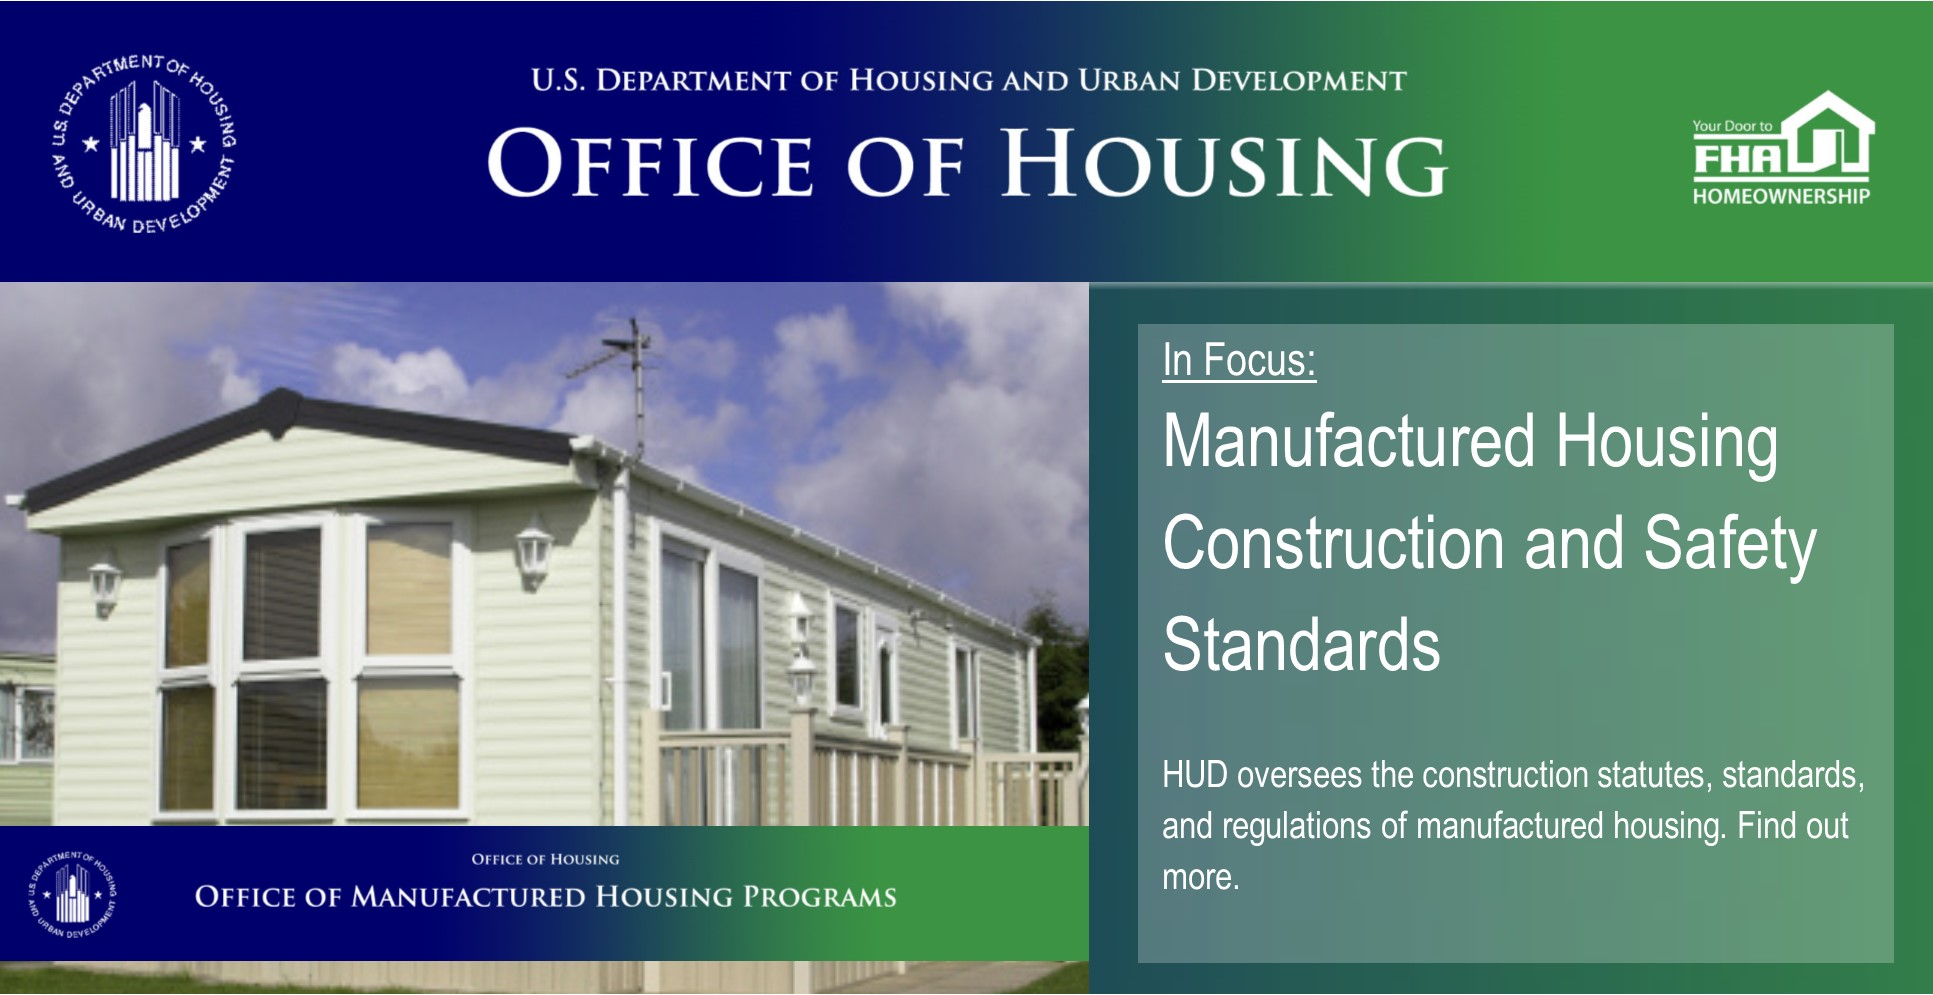 [Manufactured Housing Construction and Safety Standards}